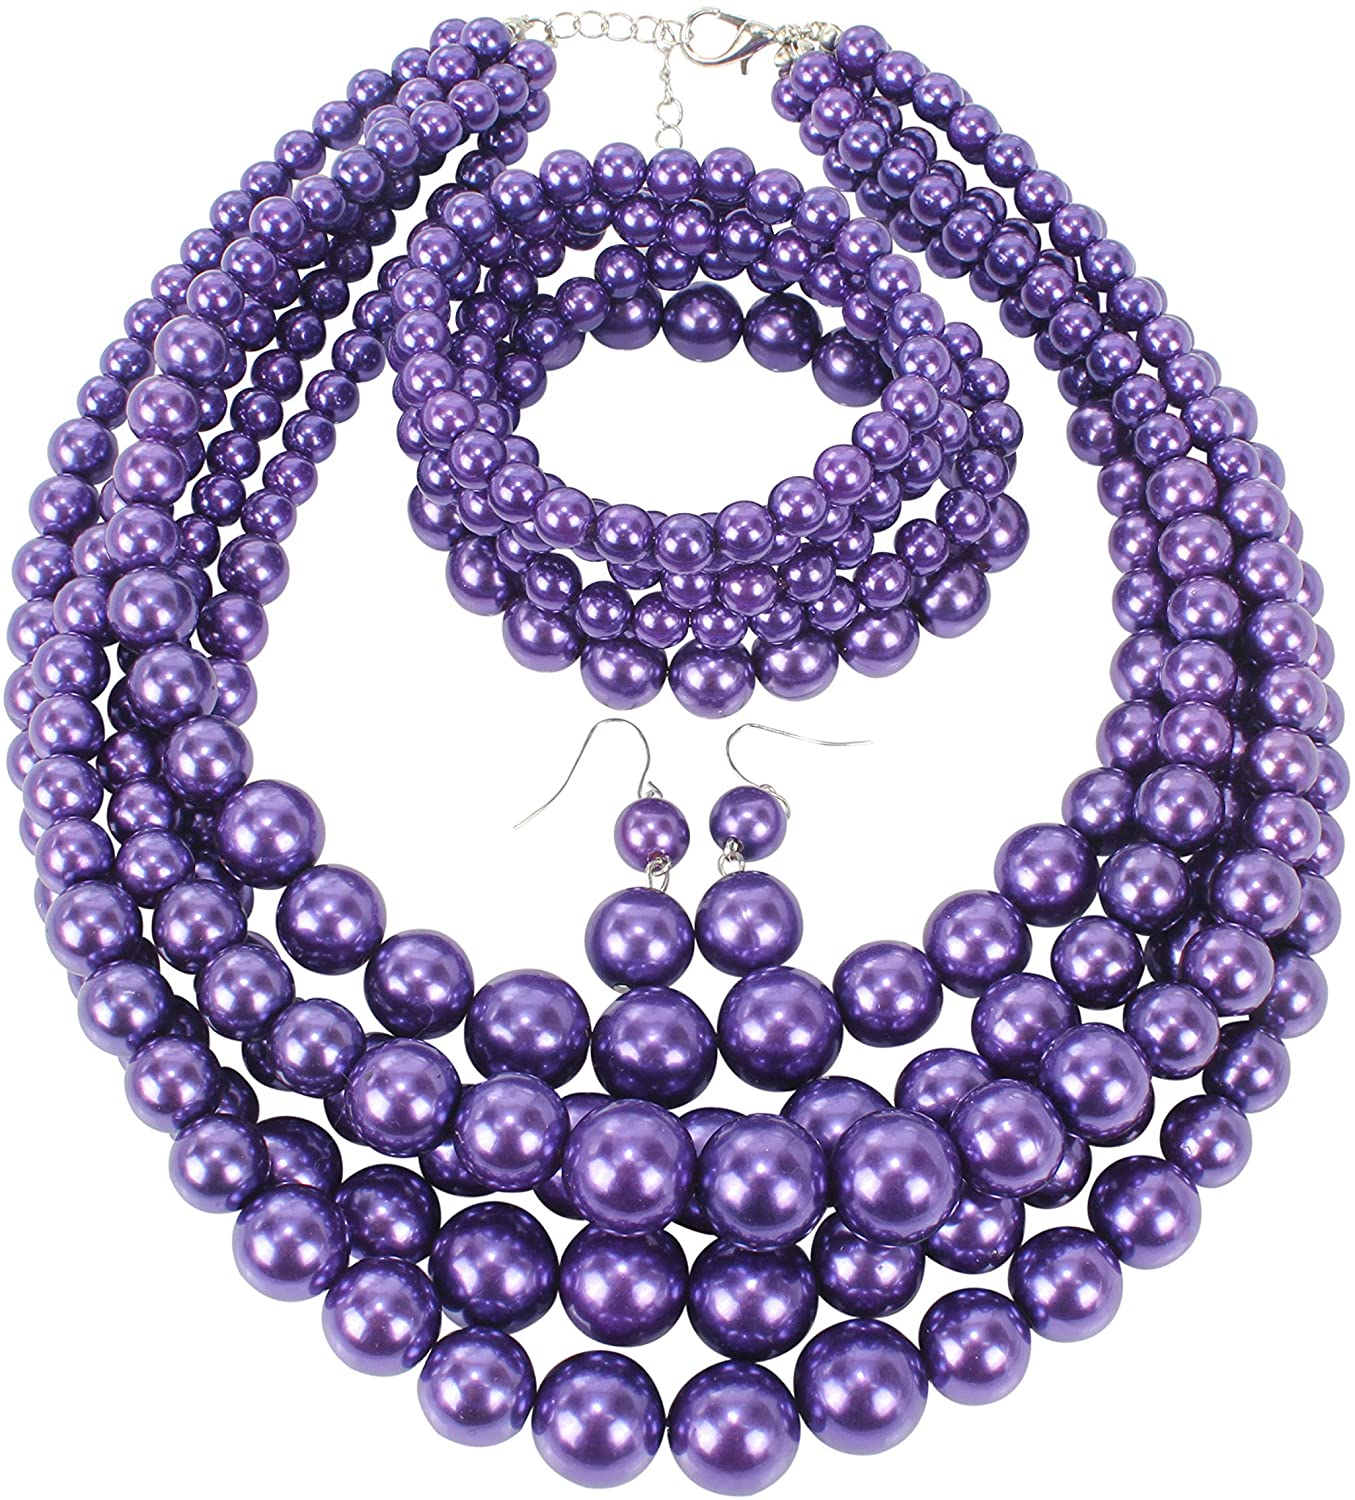 HaHaGirl Faux PearlStrands Jewelry Sets for Women Include Necklace Bracelet and Earrings Set